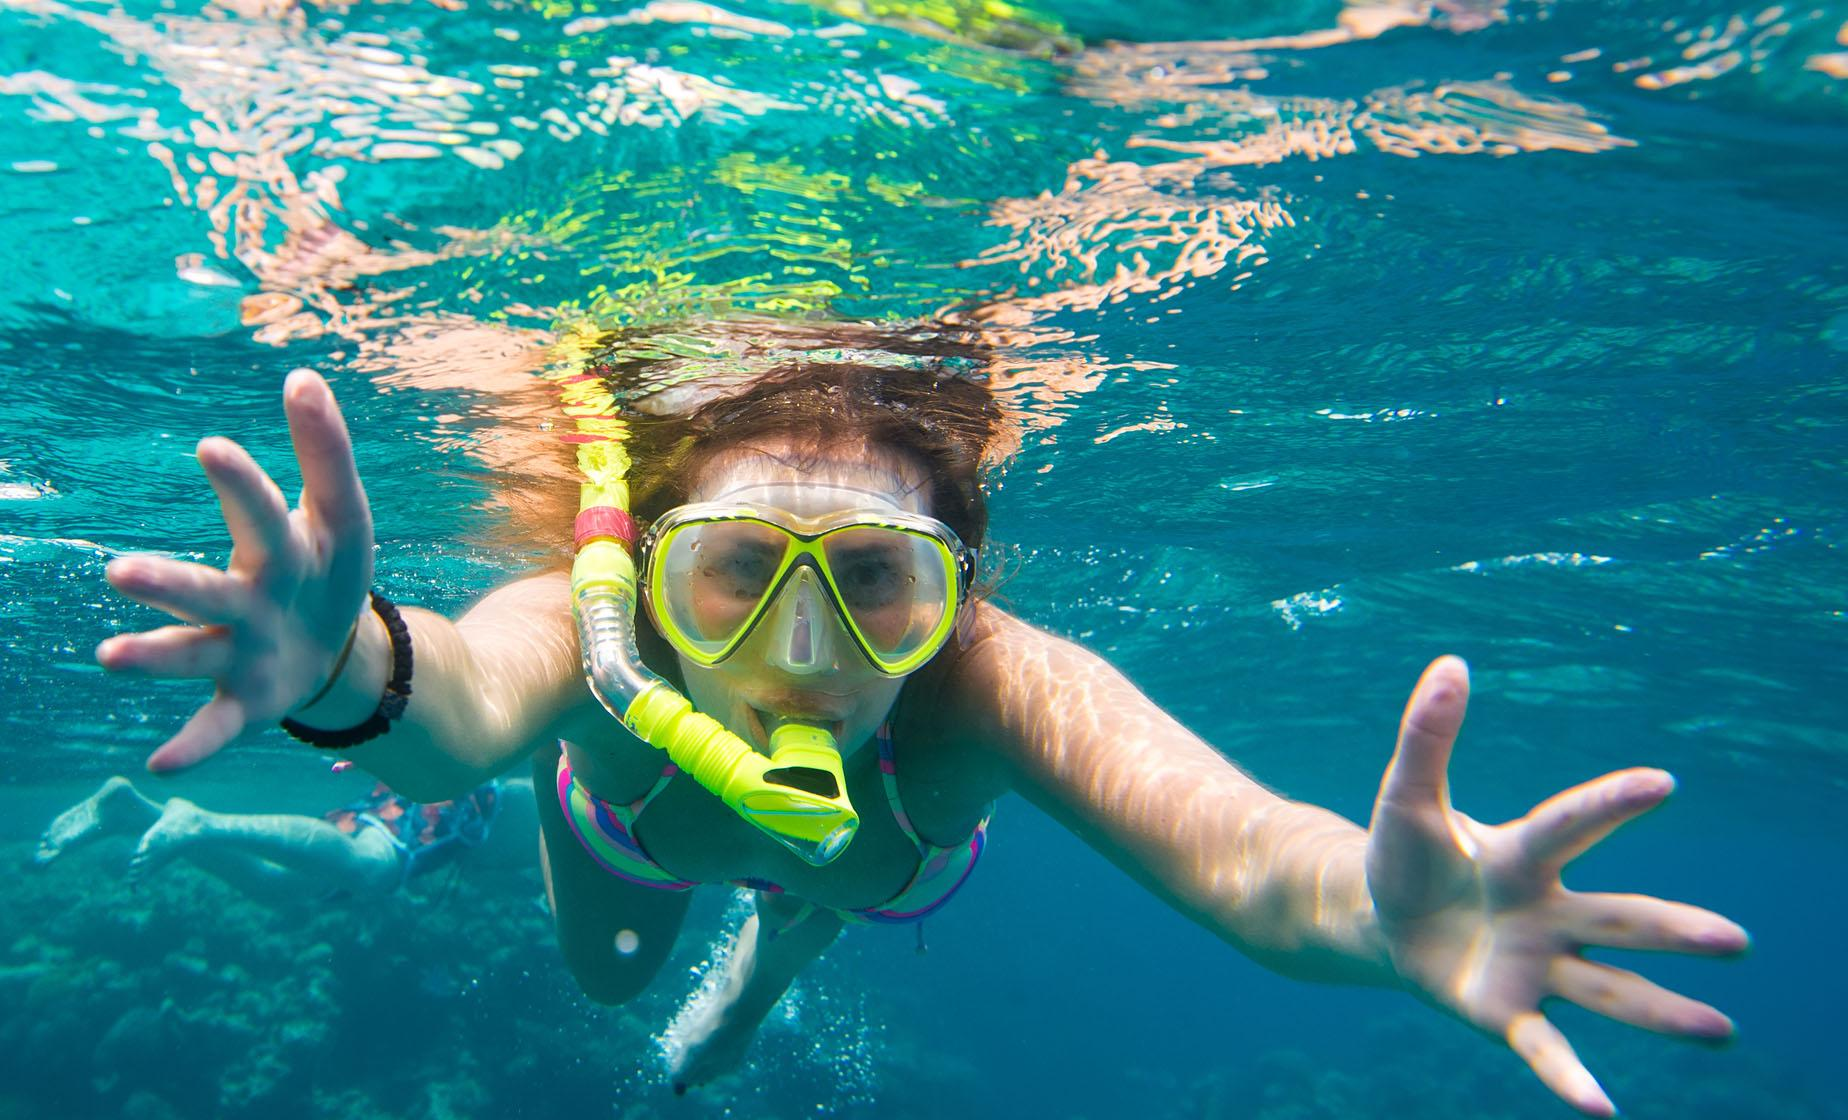 Kayaking & Snorkeling Port Trip in St. Lucia to Roseau River & Marigot Bay